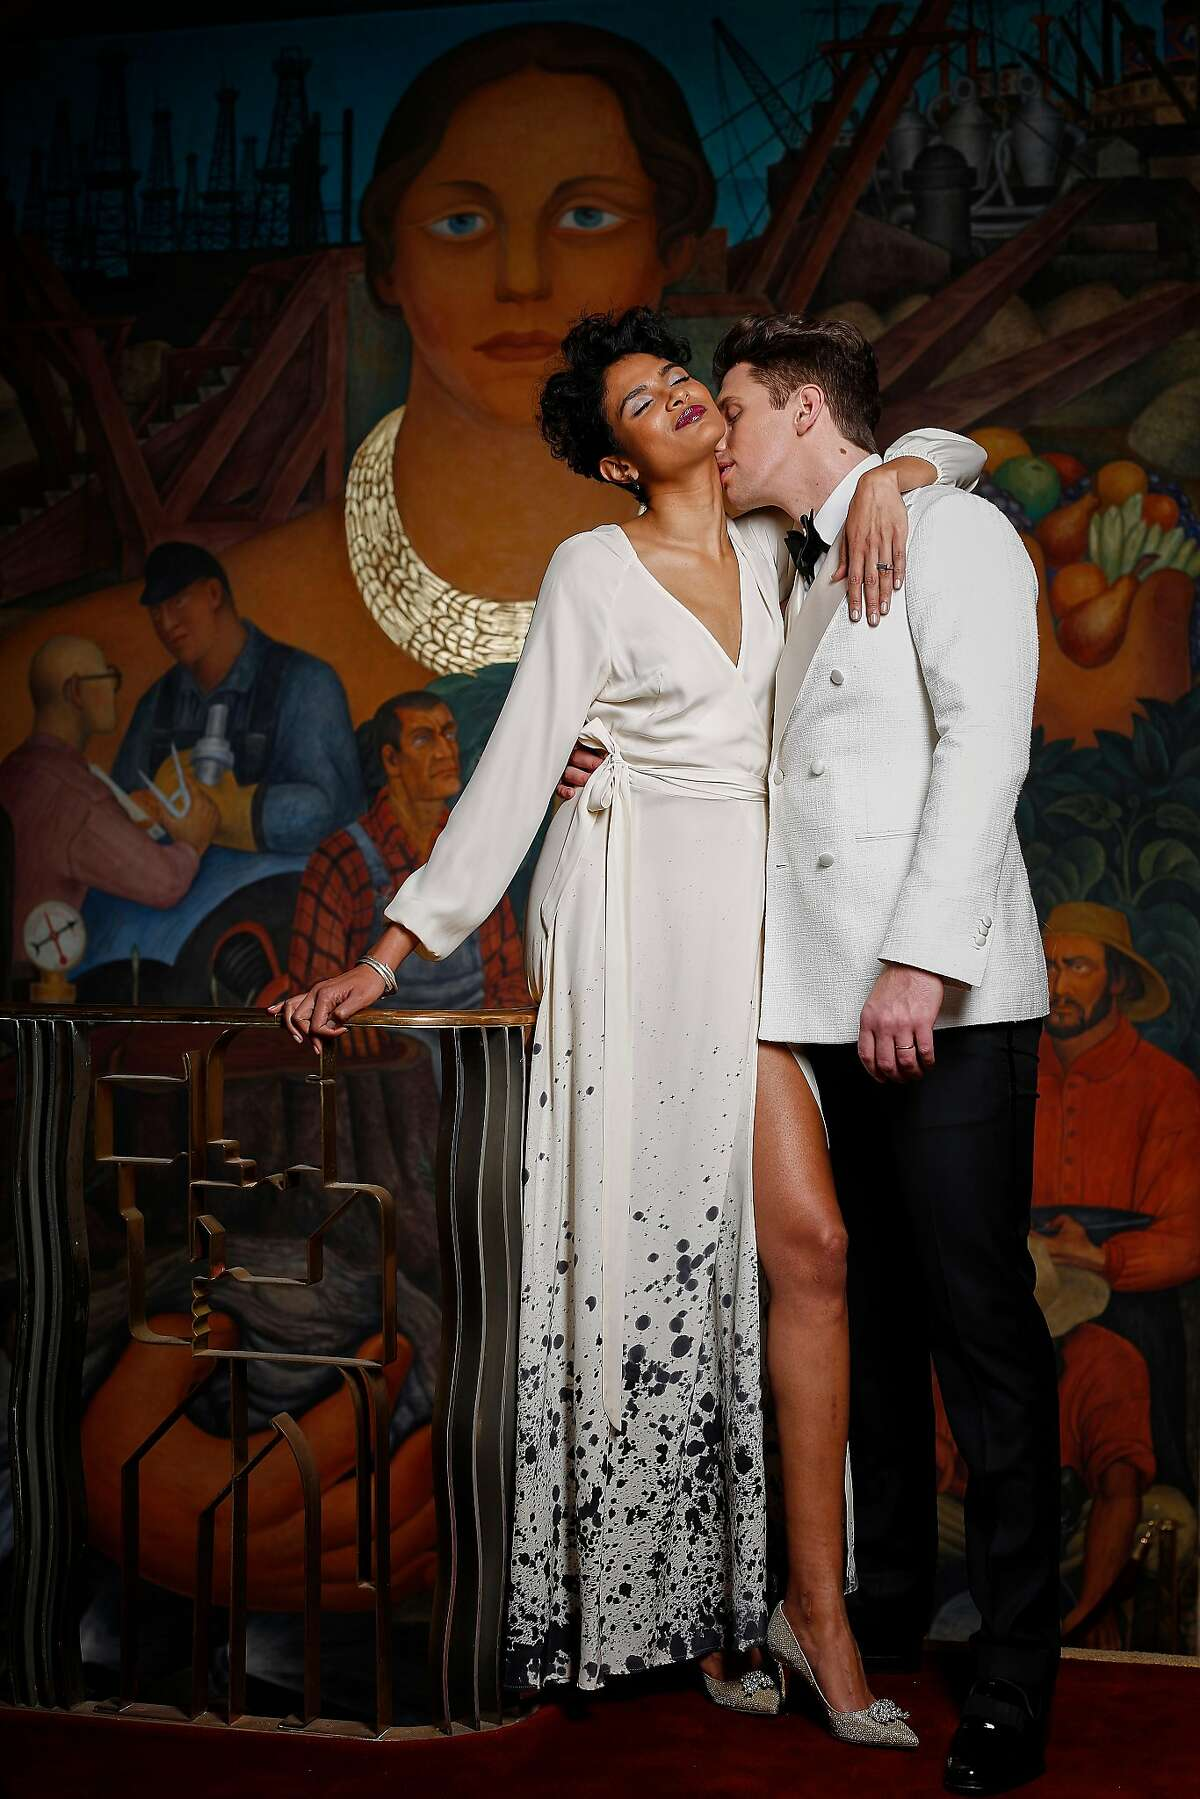 Chetna: Kamperett handpainted Linden silk maxi wrap dress, $895, www.kamperett.com; Kula earrings, $35 and Ruchi silver bangles, $95 each, Wonderland S.F.; Colleen Mauer Designs silver square ring, $134, www.colleenmauerdesigns.com; Jimmy Choo pointed pump with crystal detail, $975, Saks Fifth Avenue. Jacob: Suitsupply white plain double breasted dinner jacket, $469, tuxedo trousers, $149, tuxedo shirt, $99, bowtie, $45, pocket square, $29 and patent tuxedo shoe, $249, www.suitsupply.com, opening on Maiden Lane spring 2016. Models: Chetna M. and Jacob Dean / Look Model Agency Styling: Tony Bravo Makeup: Tamra-Marie Johnson Hair & grooming: Ron Pernell Styling assistant: Rachel Znerold Photo assistant: Stephen Lam Shot on location at the City Club, San Francisco